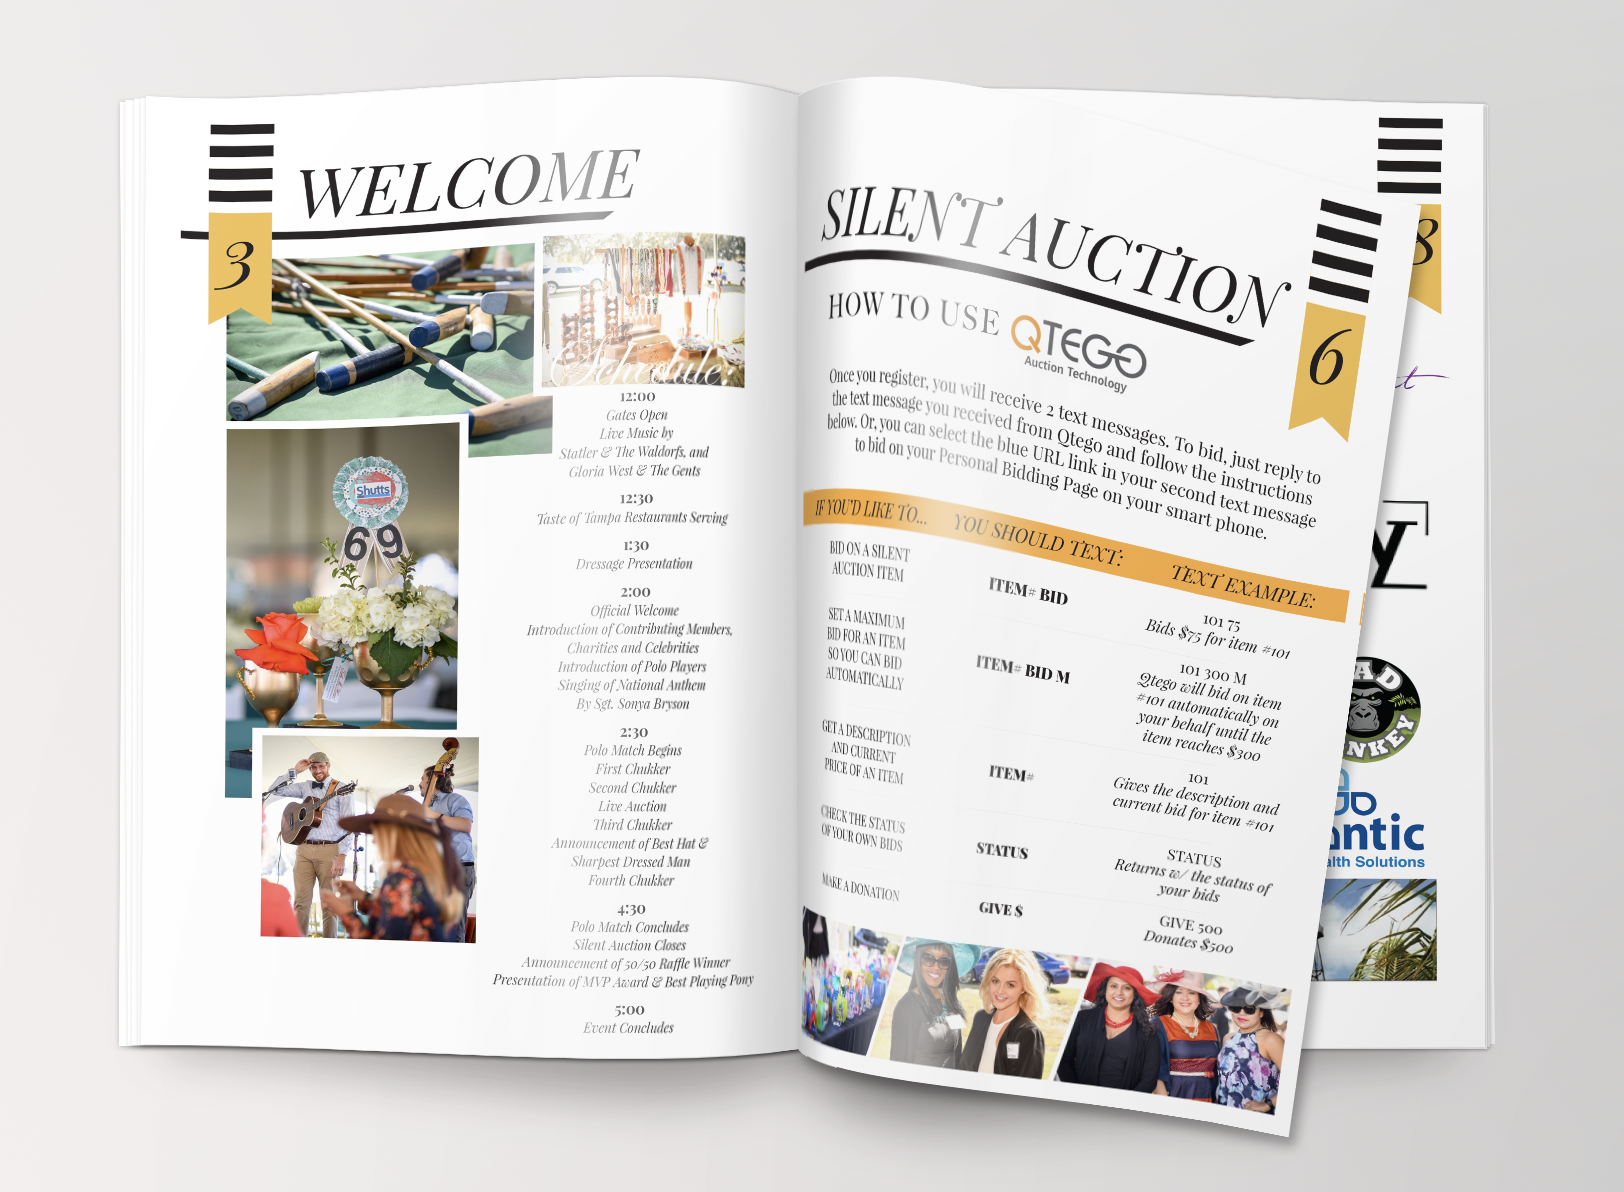 The Inside of Charity Polo Classic's Program Guide